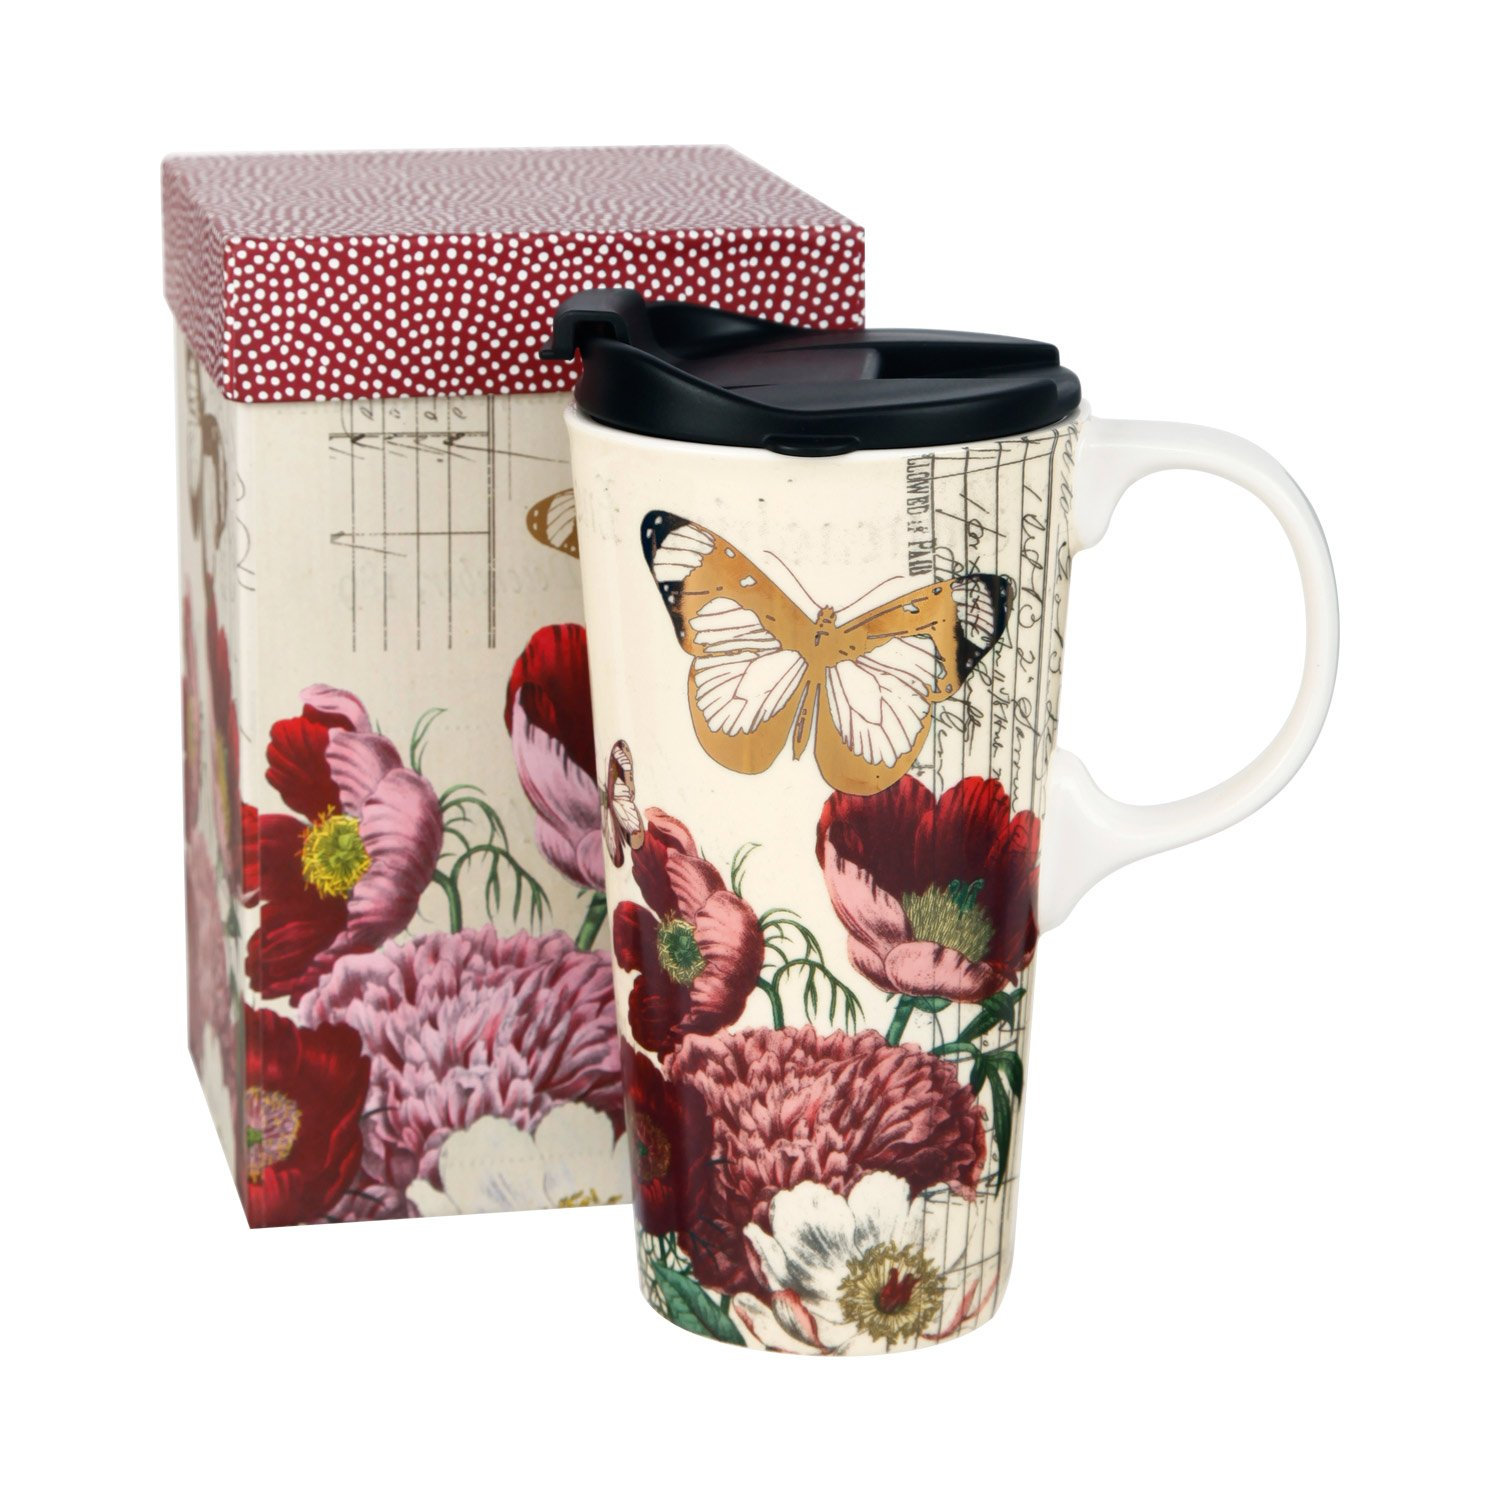 17 OZ Ceramic Mug Travel Cup with Handle and Gift Box Red Flower and Butterfly